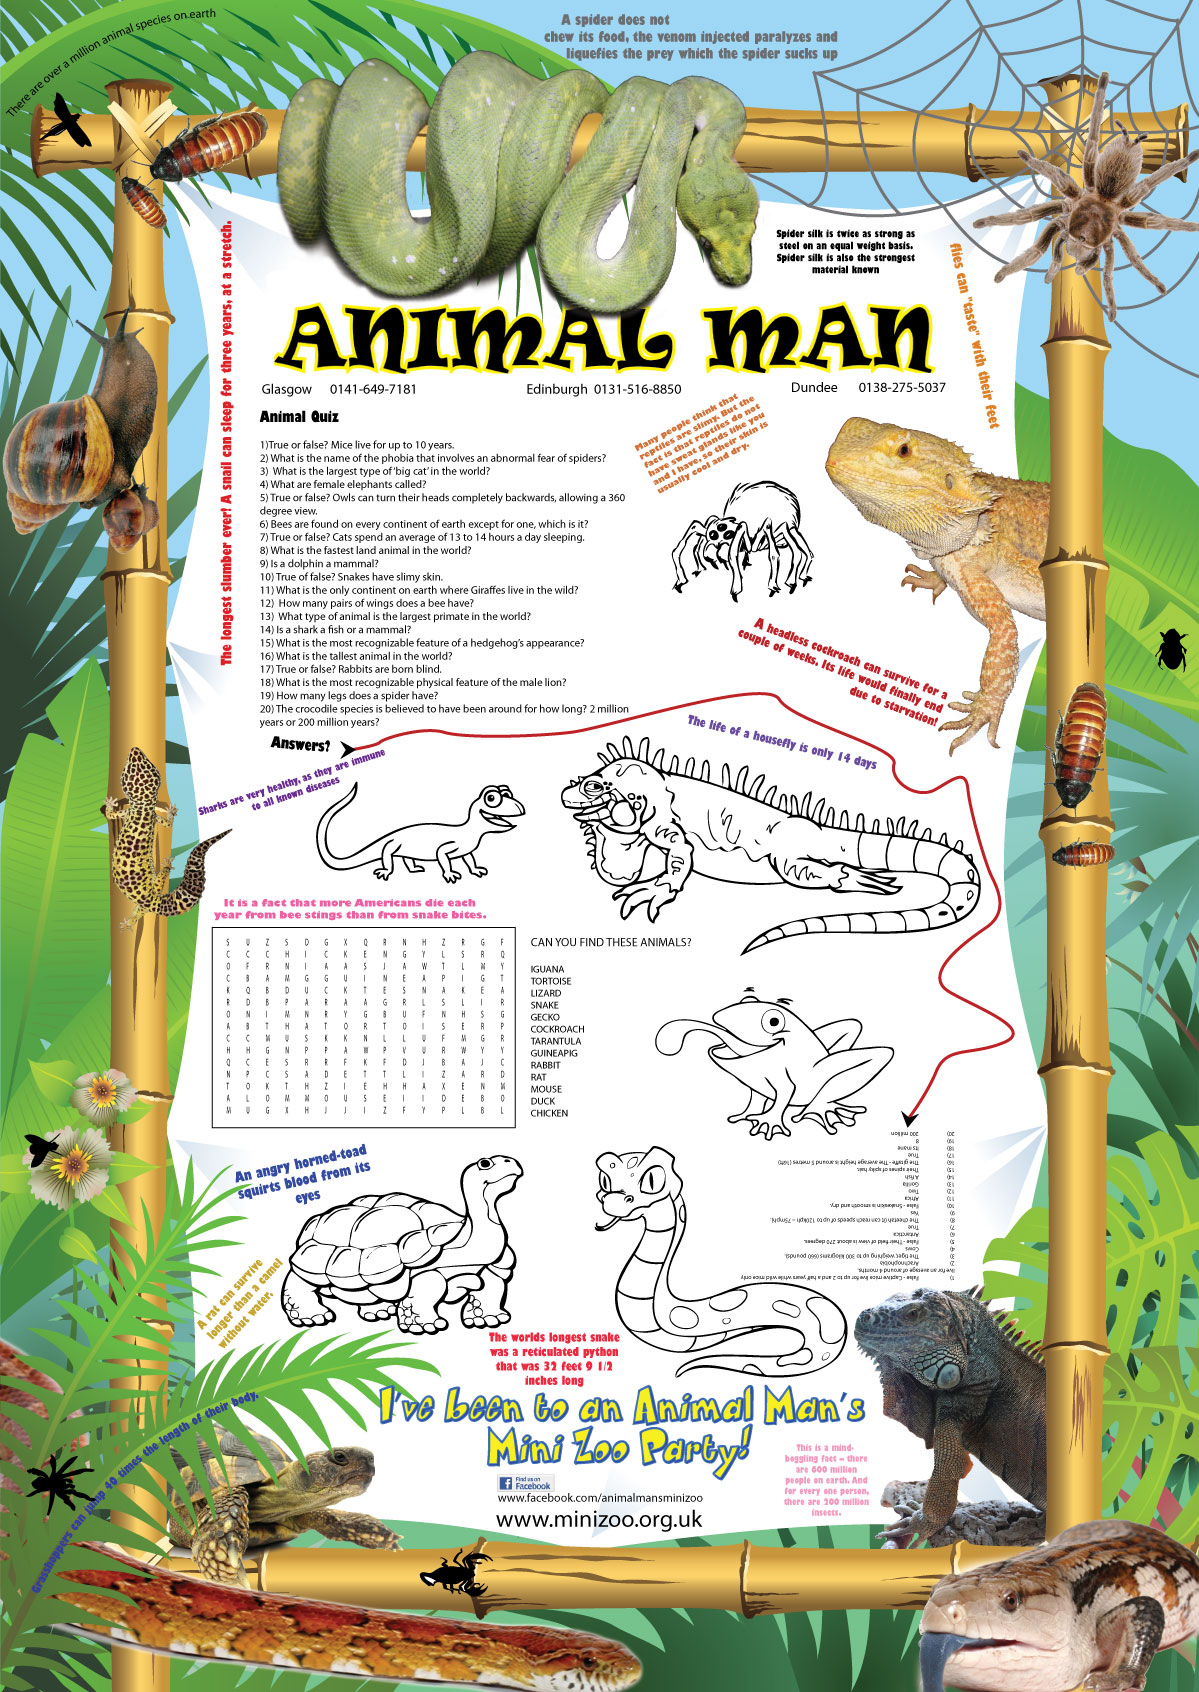 New Animal Man Party Poster